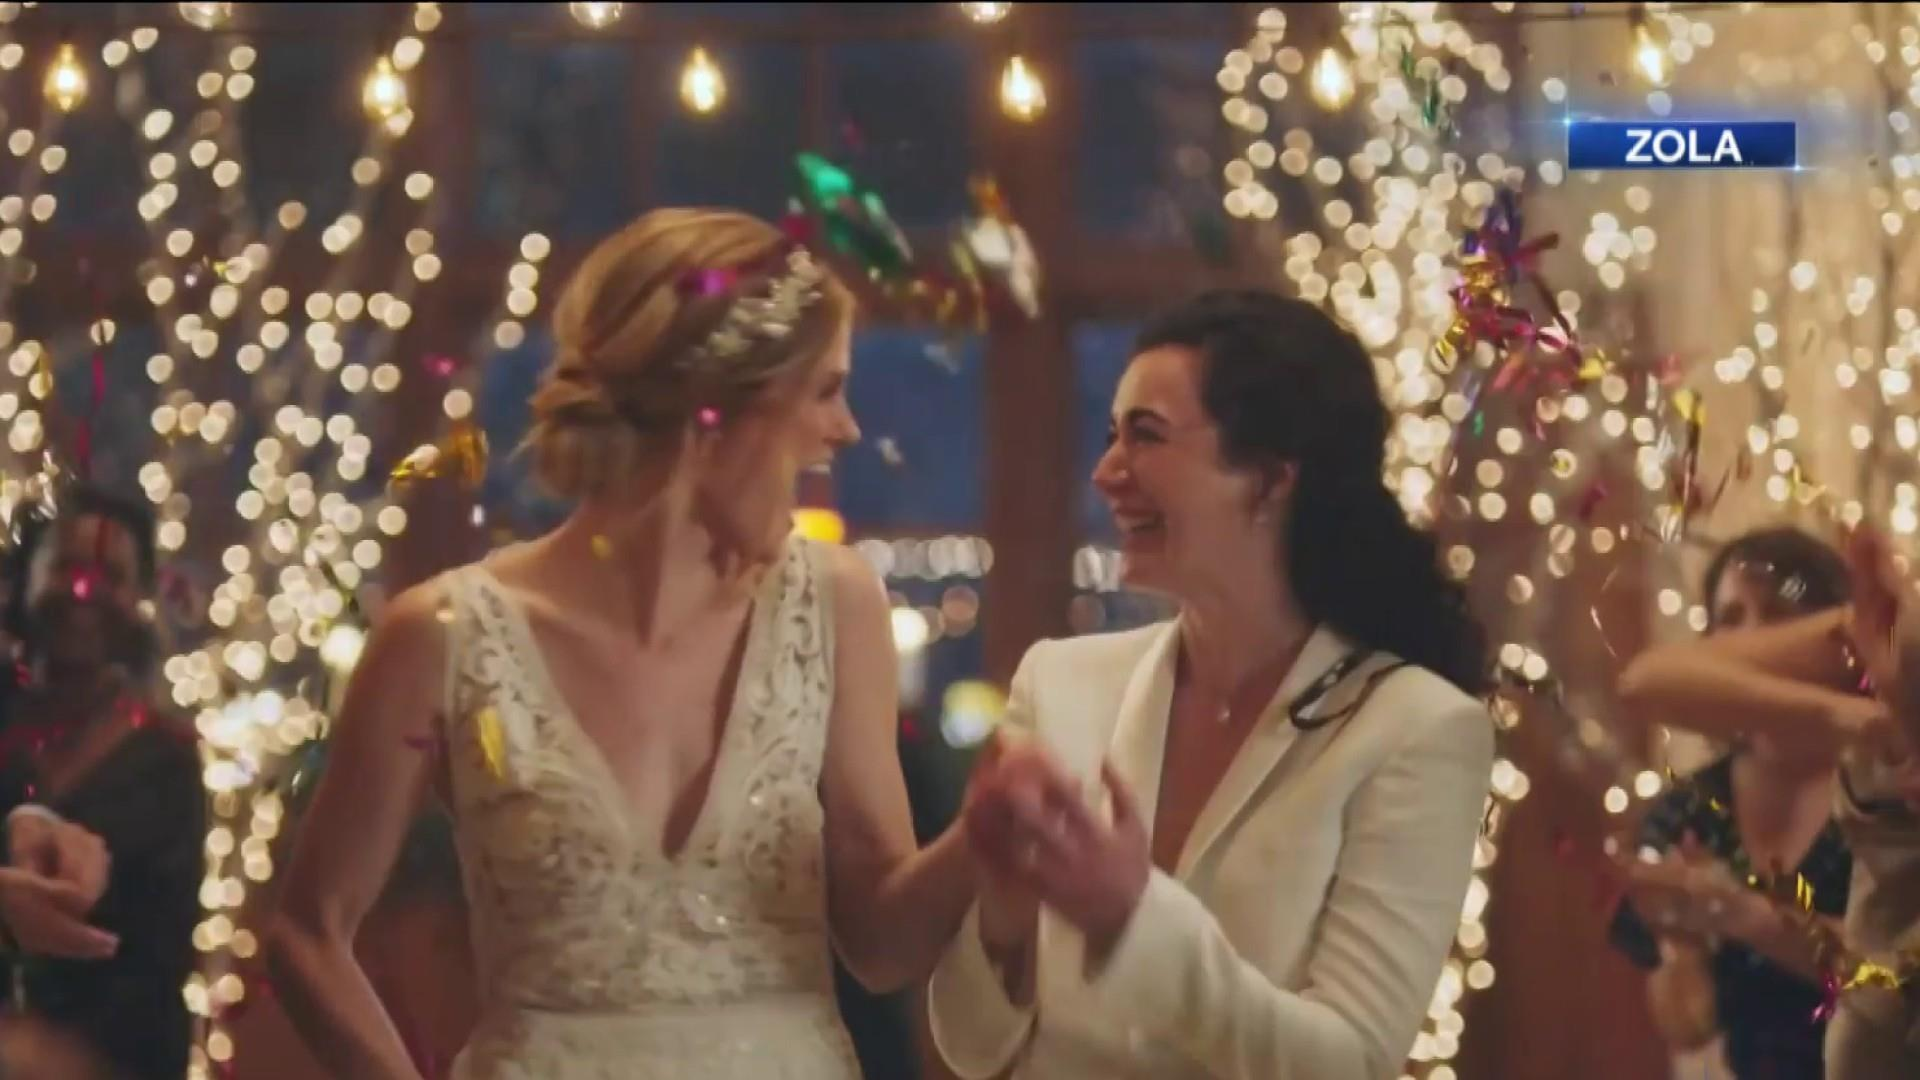 Hallmark wants to reinstate same-sex marriage ad after pulling it